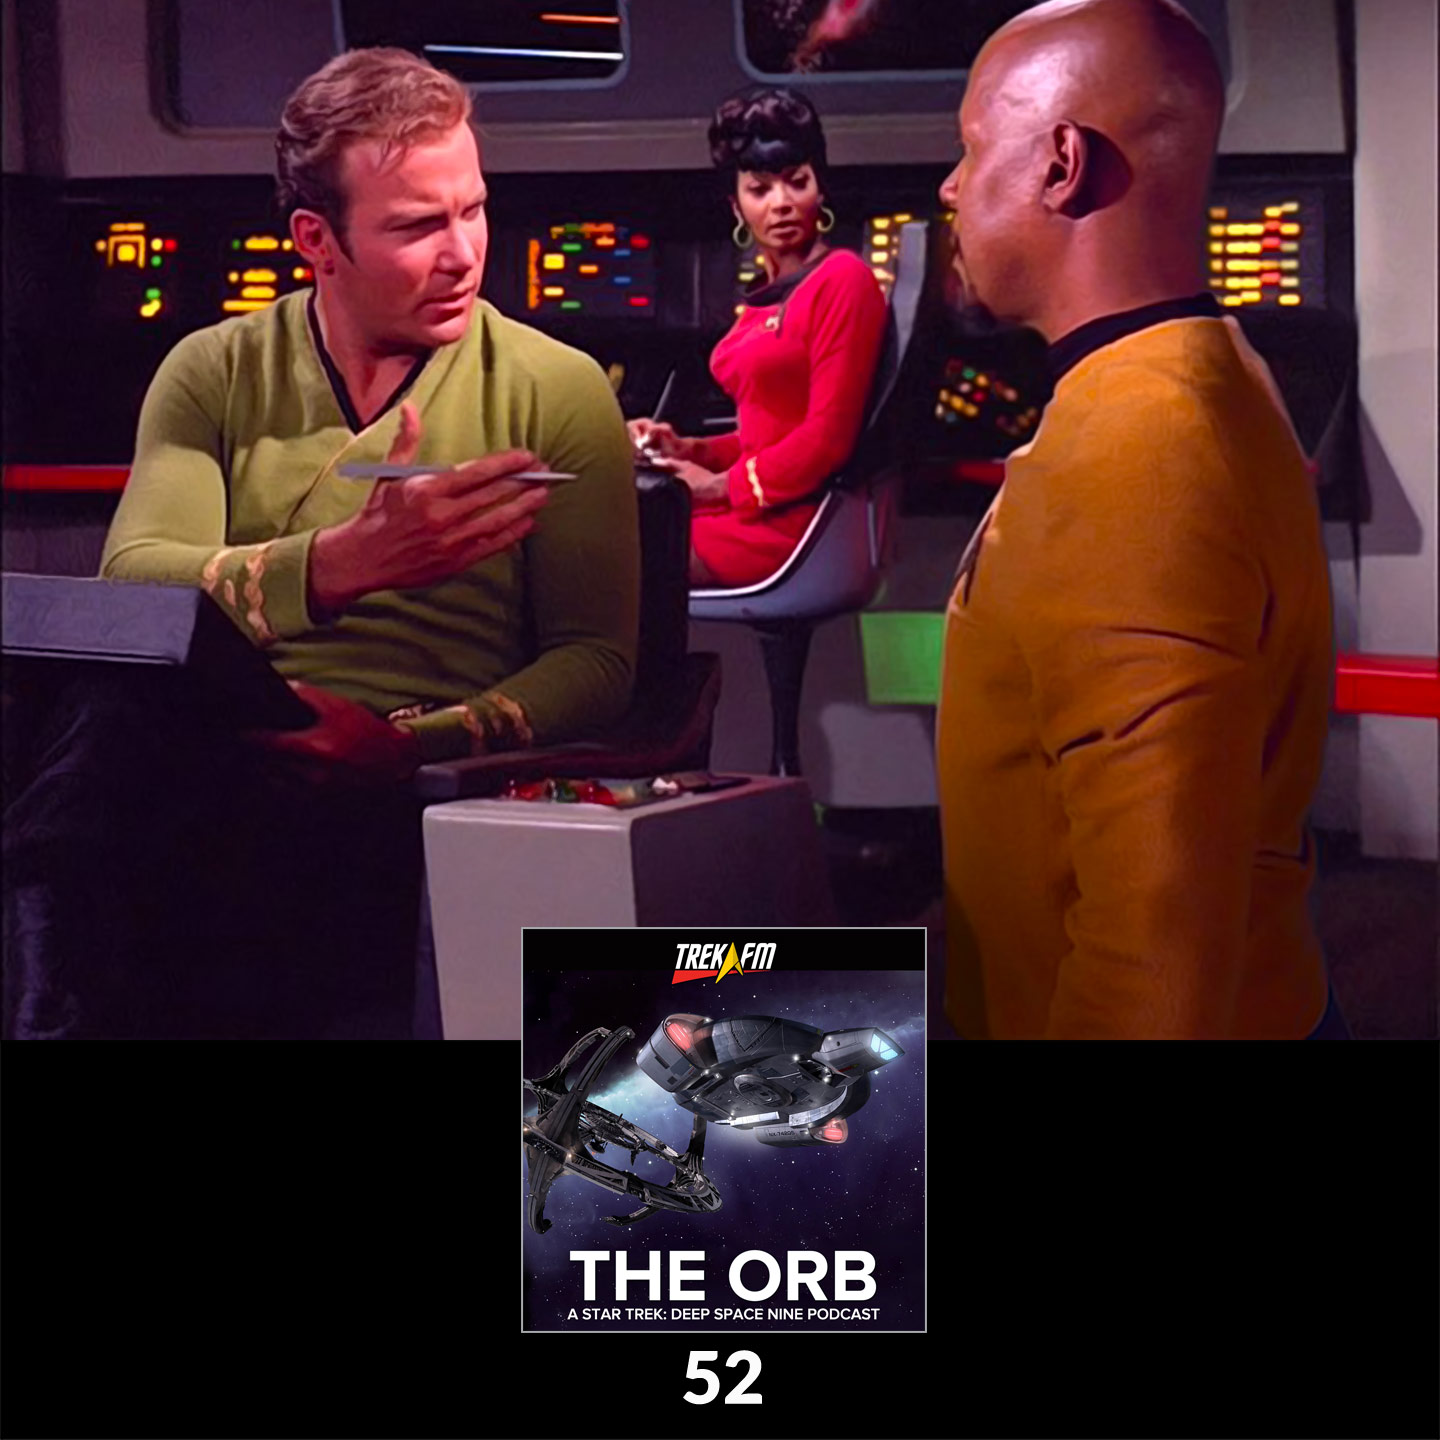 The Orb 52: But It's Captain Kirk!